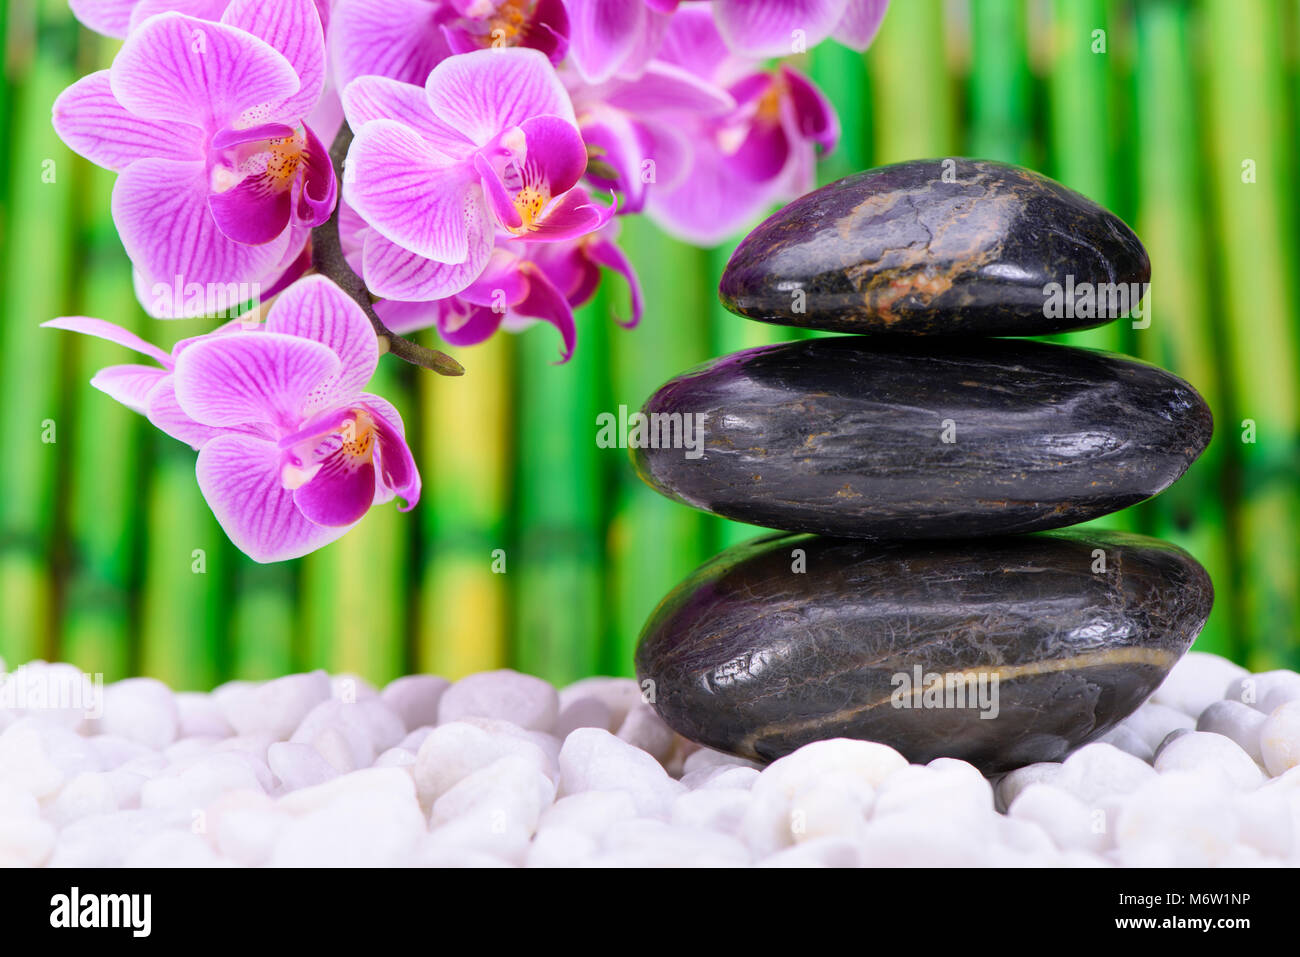 japanese zen garden with stacked stones and orchid flower - Stock Image